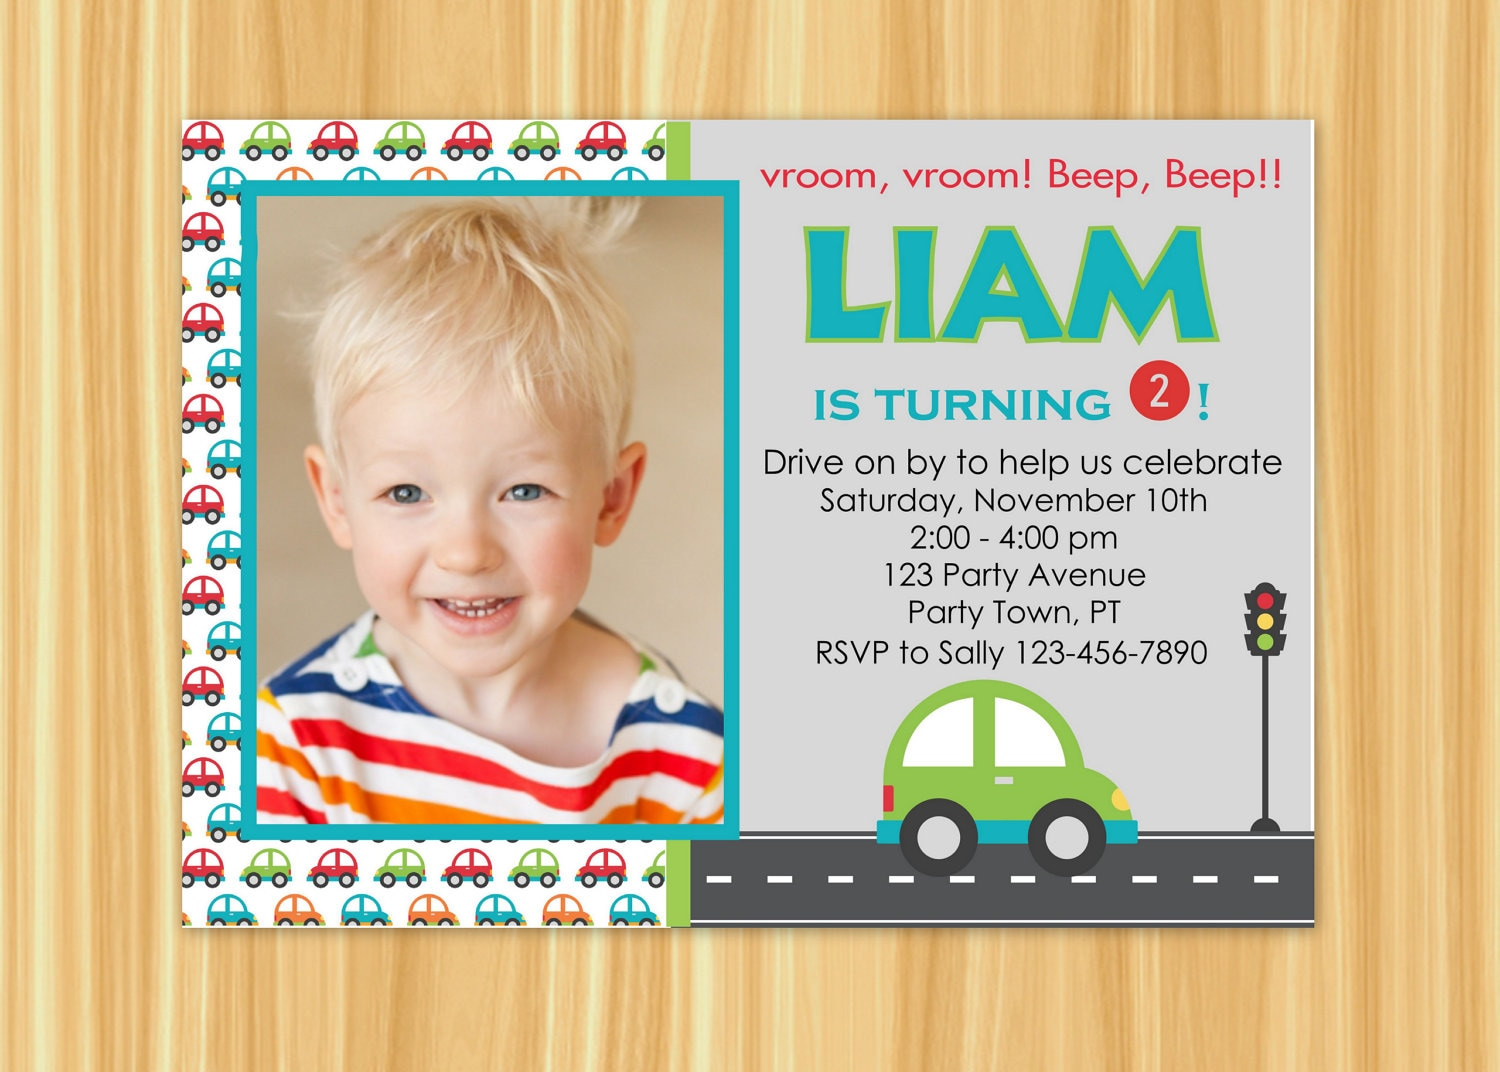 Second Birthday Party Invitation Wording Choice Image - invitation ...